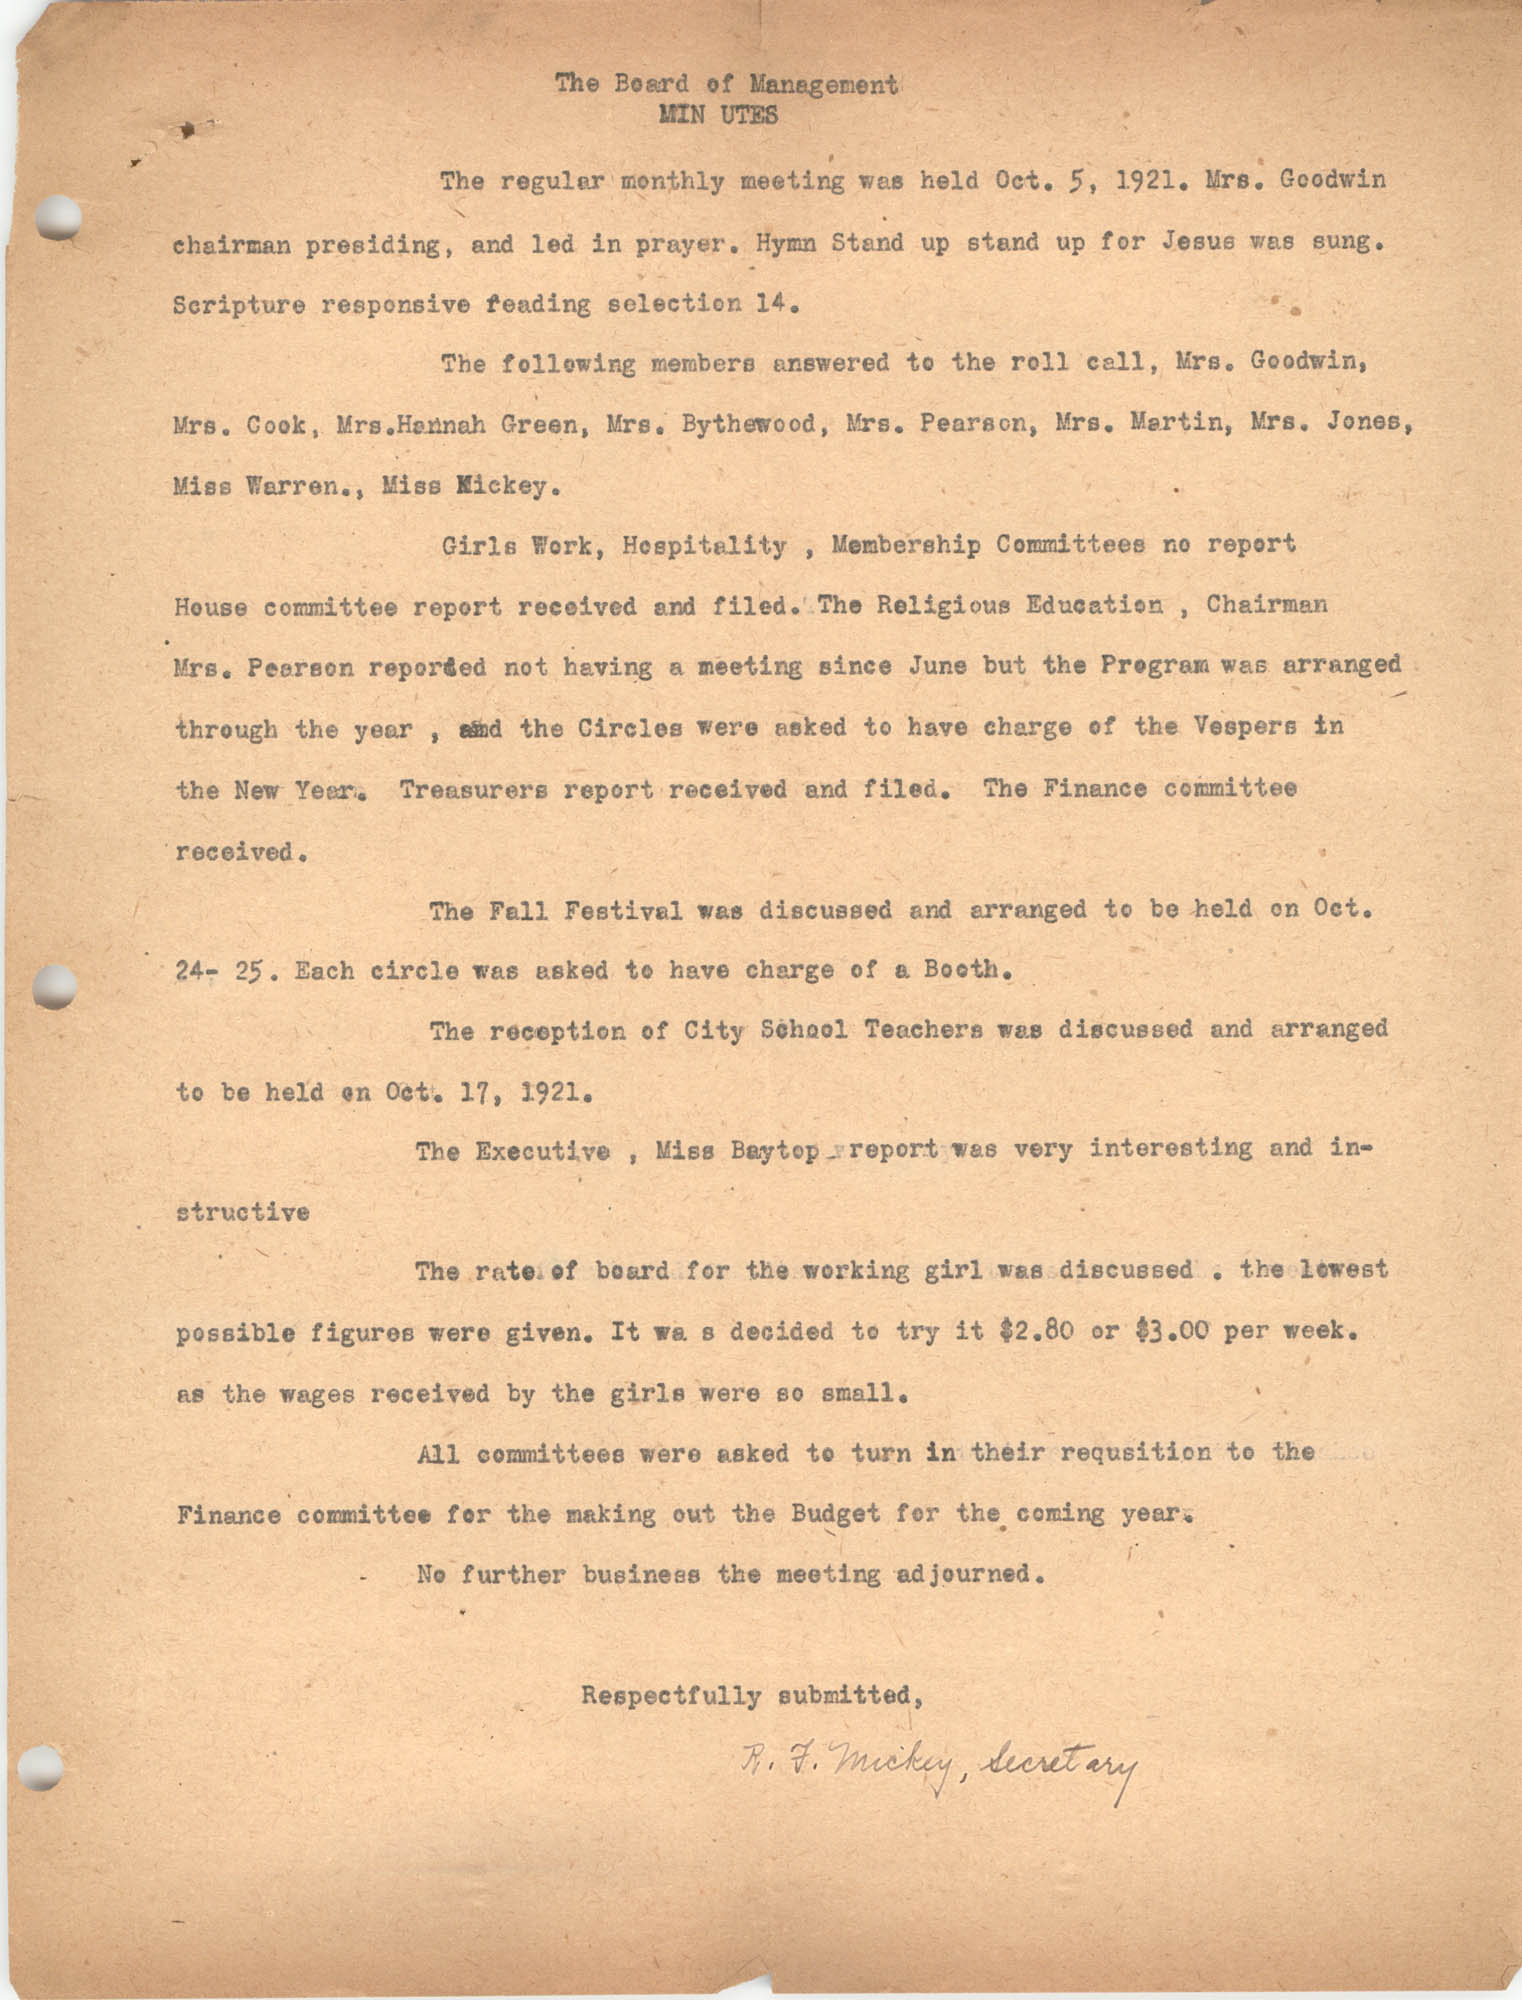 Board of Management Minutes, Coming Street Y.W.C.A., October 5, 1921